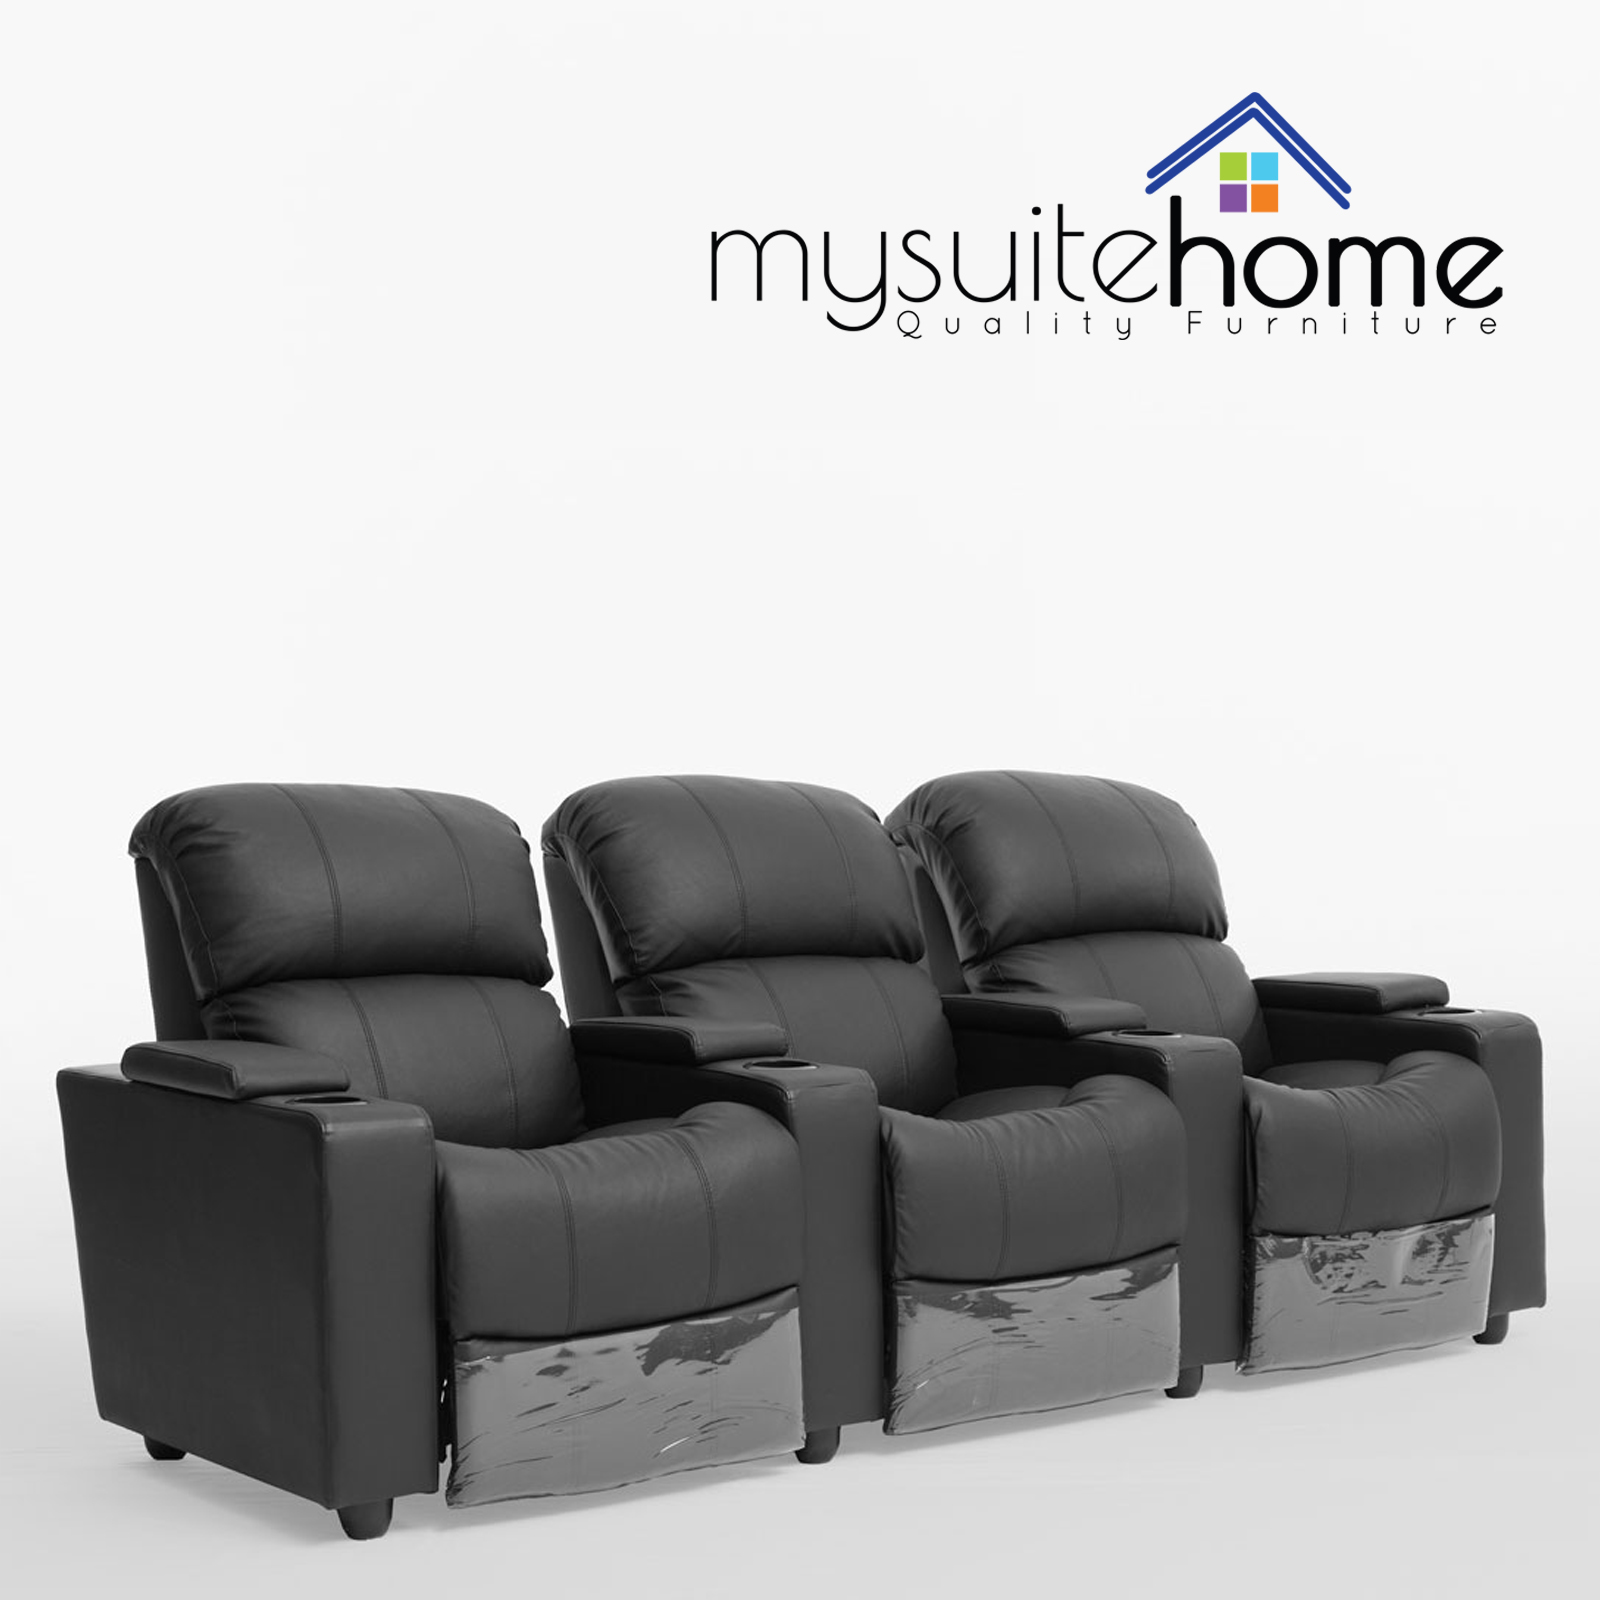 Sofa Bed Home Theater: Sophie Brand New Leather 3 Seater Recliner Home Theater